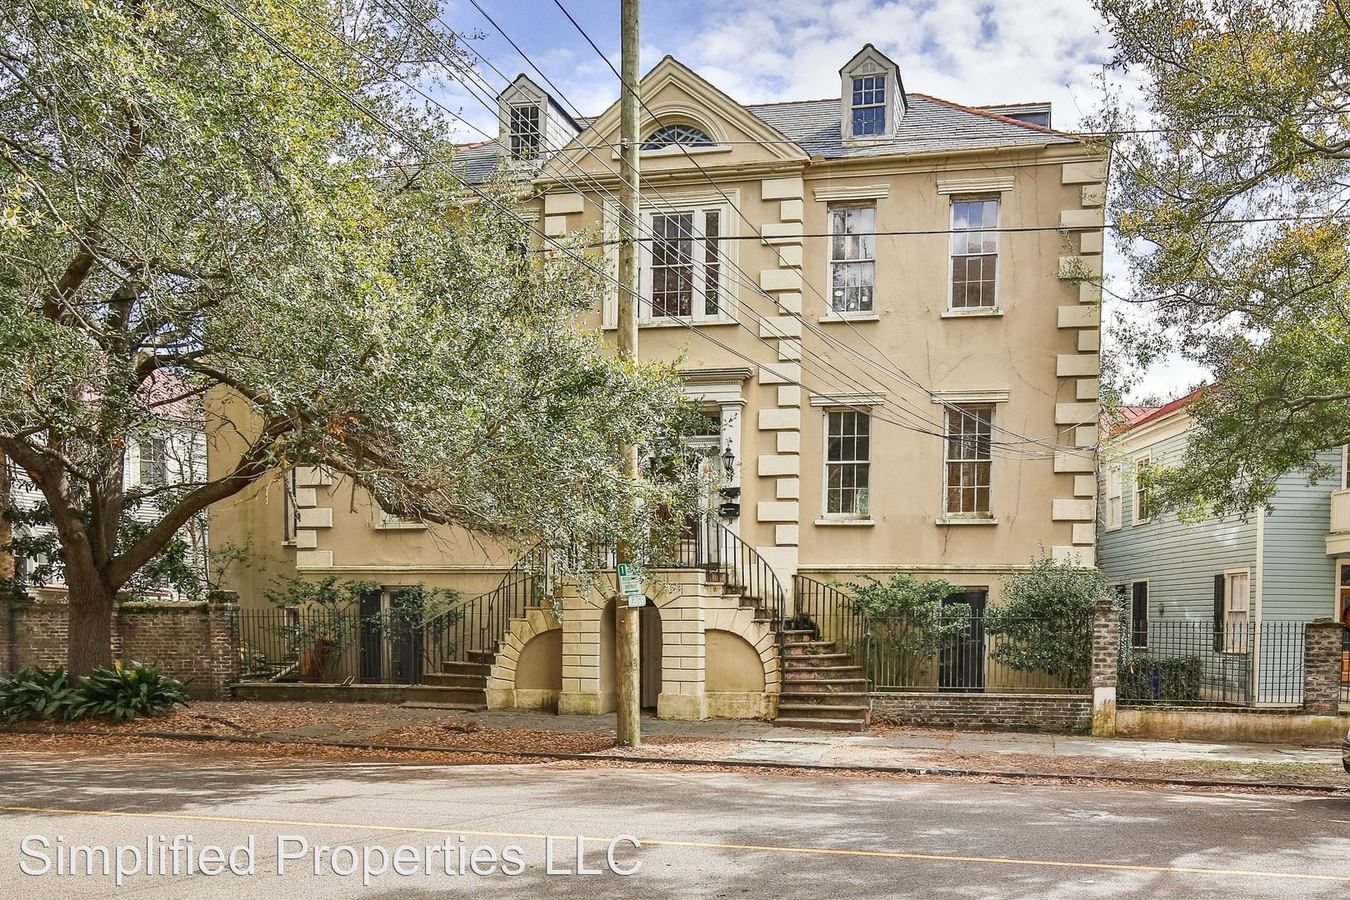 2 Bedrooms 1 Bathroom Apartment for rent at 43 Charlotte St in Charleston, SC